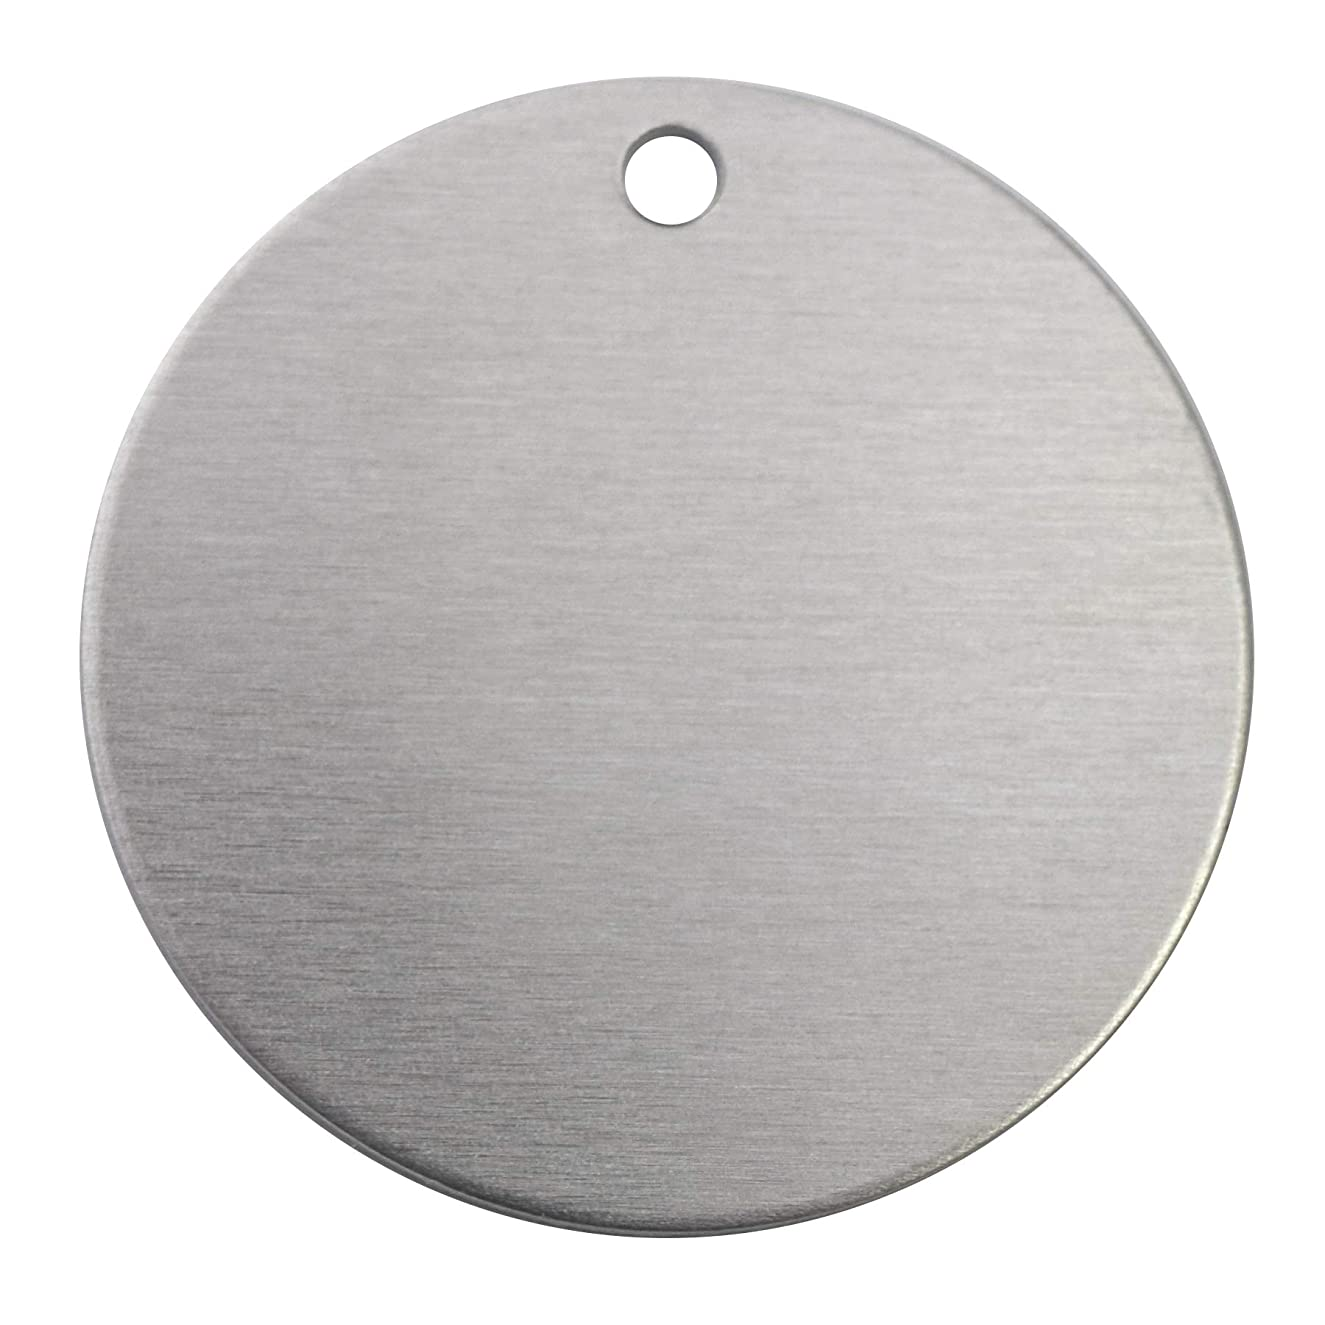 RMP Stamping Blanks, 1 1/2 Inch Round Blank With Hole, Aluminum .063 Inch (14 Ga.)- 1,000 Pack